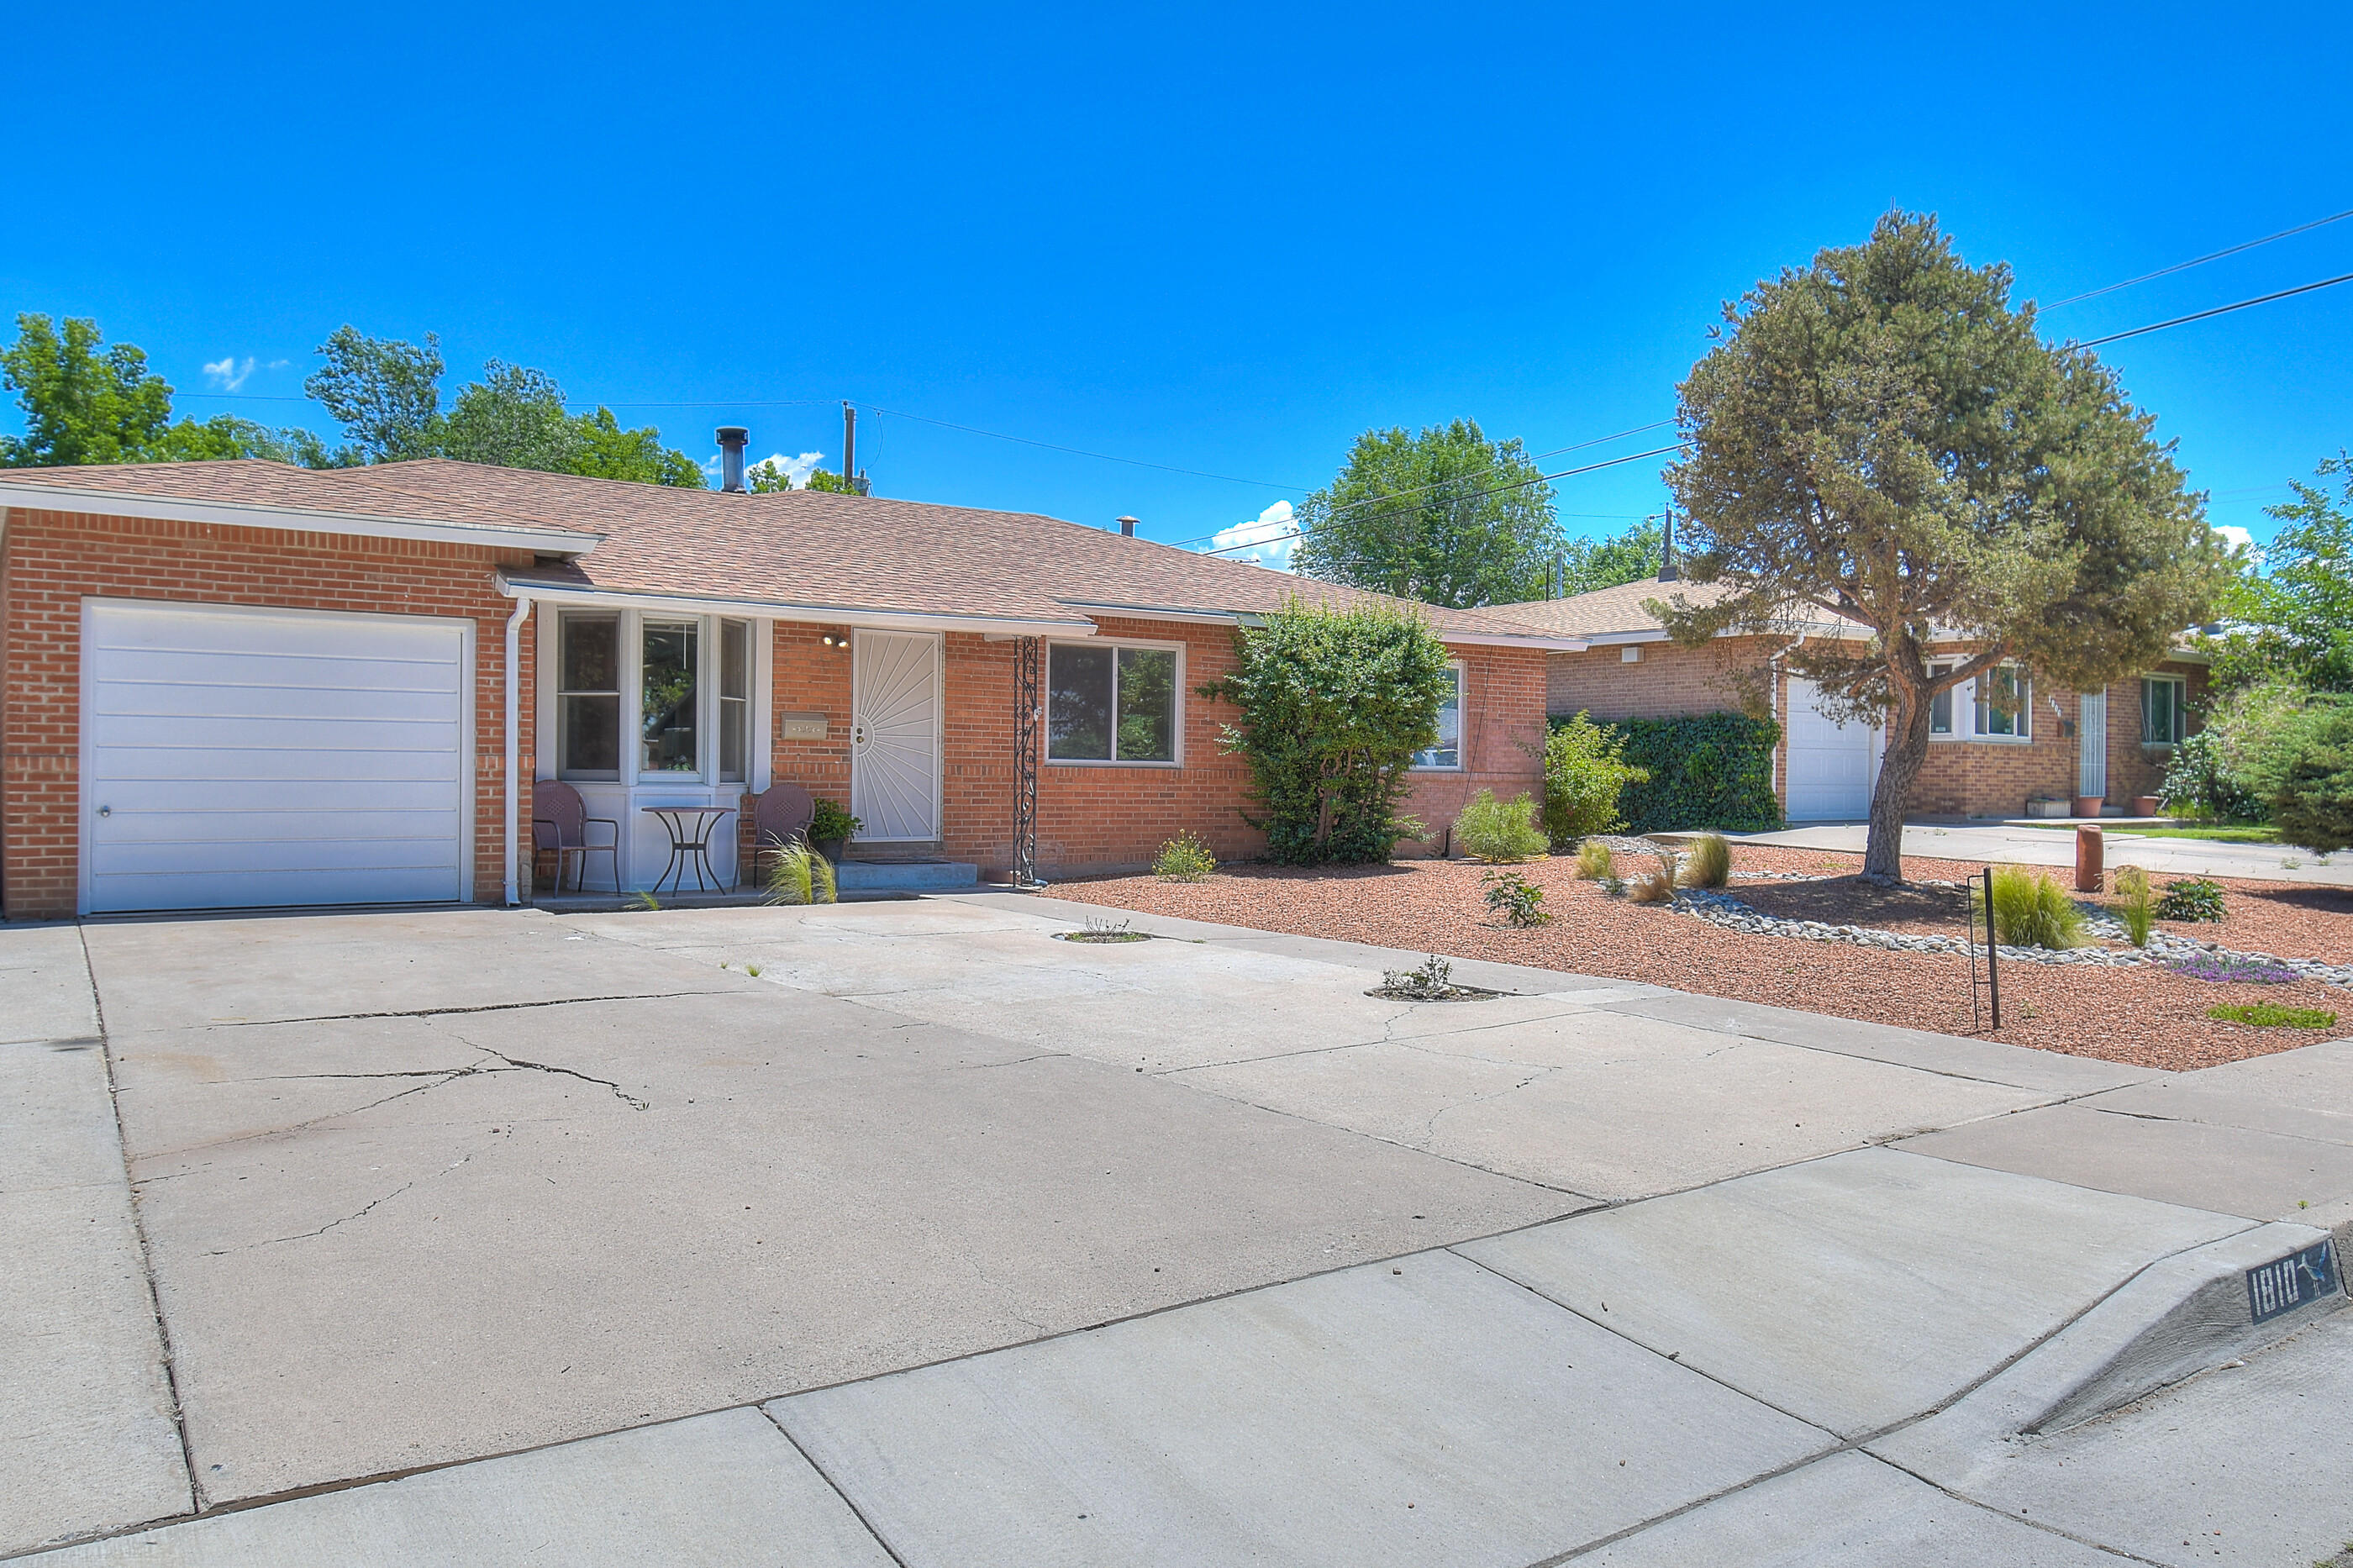 This 3 bed 2 bath home has fresh paint, new blinds, updated bathrooms and beautiful original hardwood floors. The living area boasts a lovely wood burning stove and open kitchen. Centrally located to parks, major roads and shopping. The backyard is huge and ready for your personal touch. New front landscaping adds to the curb appeal. A great find in the ABQ area!